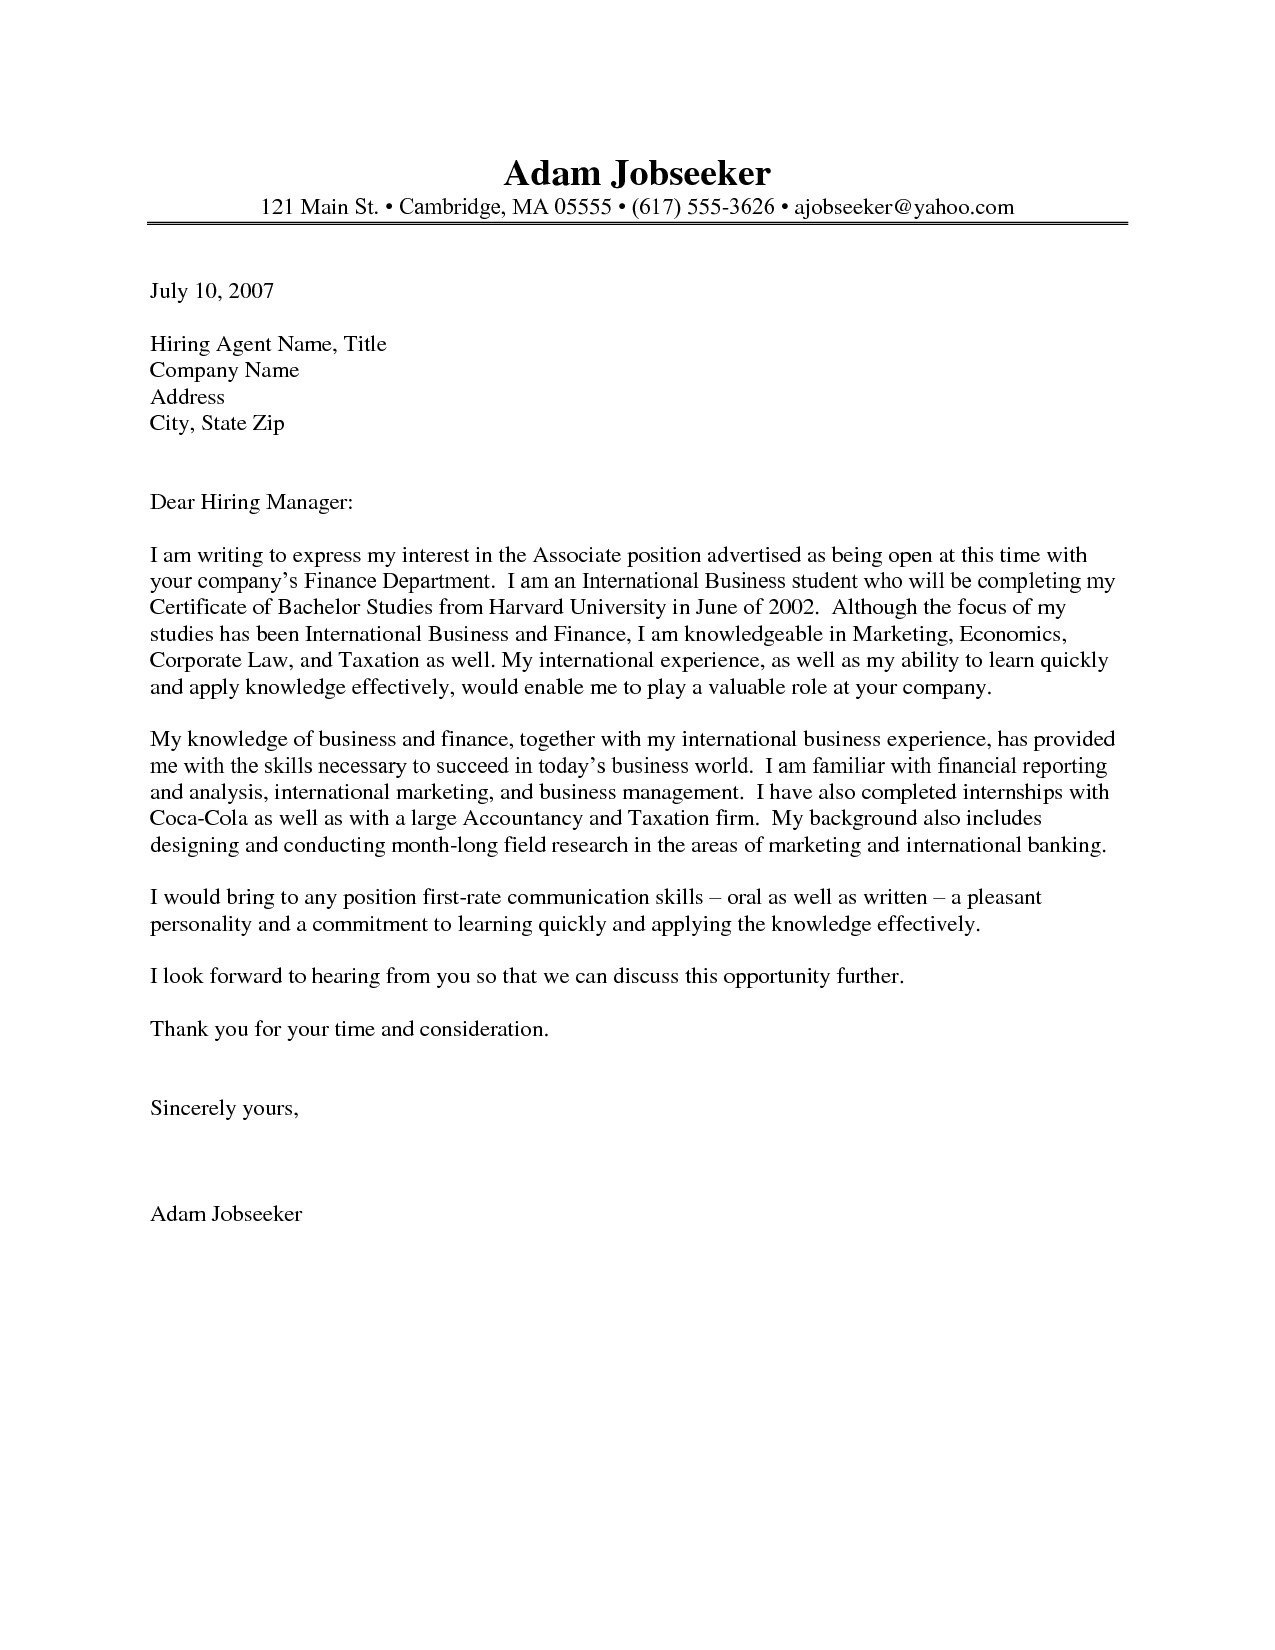 Letter Re mendation Template for Internship Samples